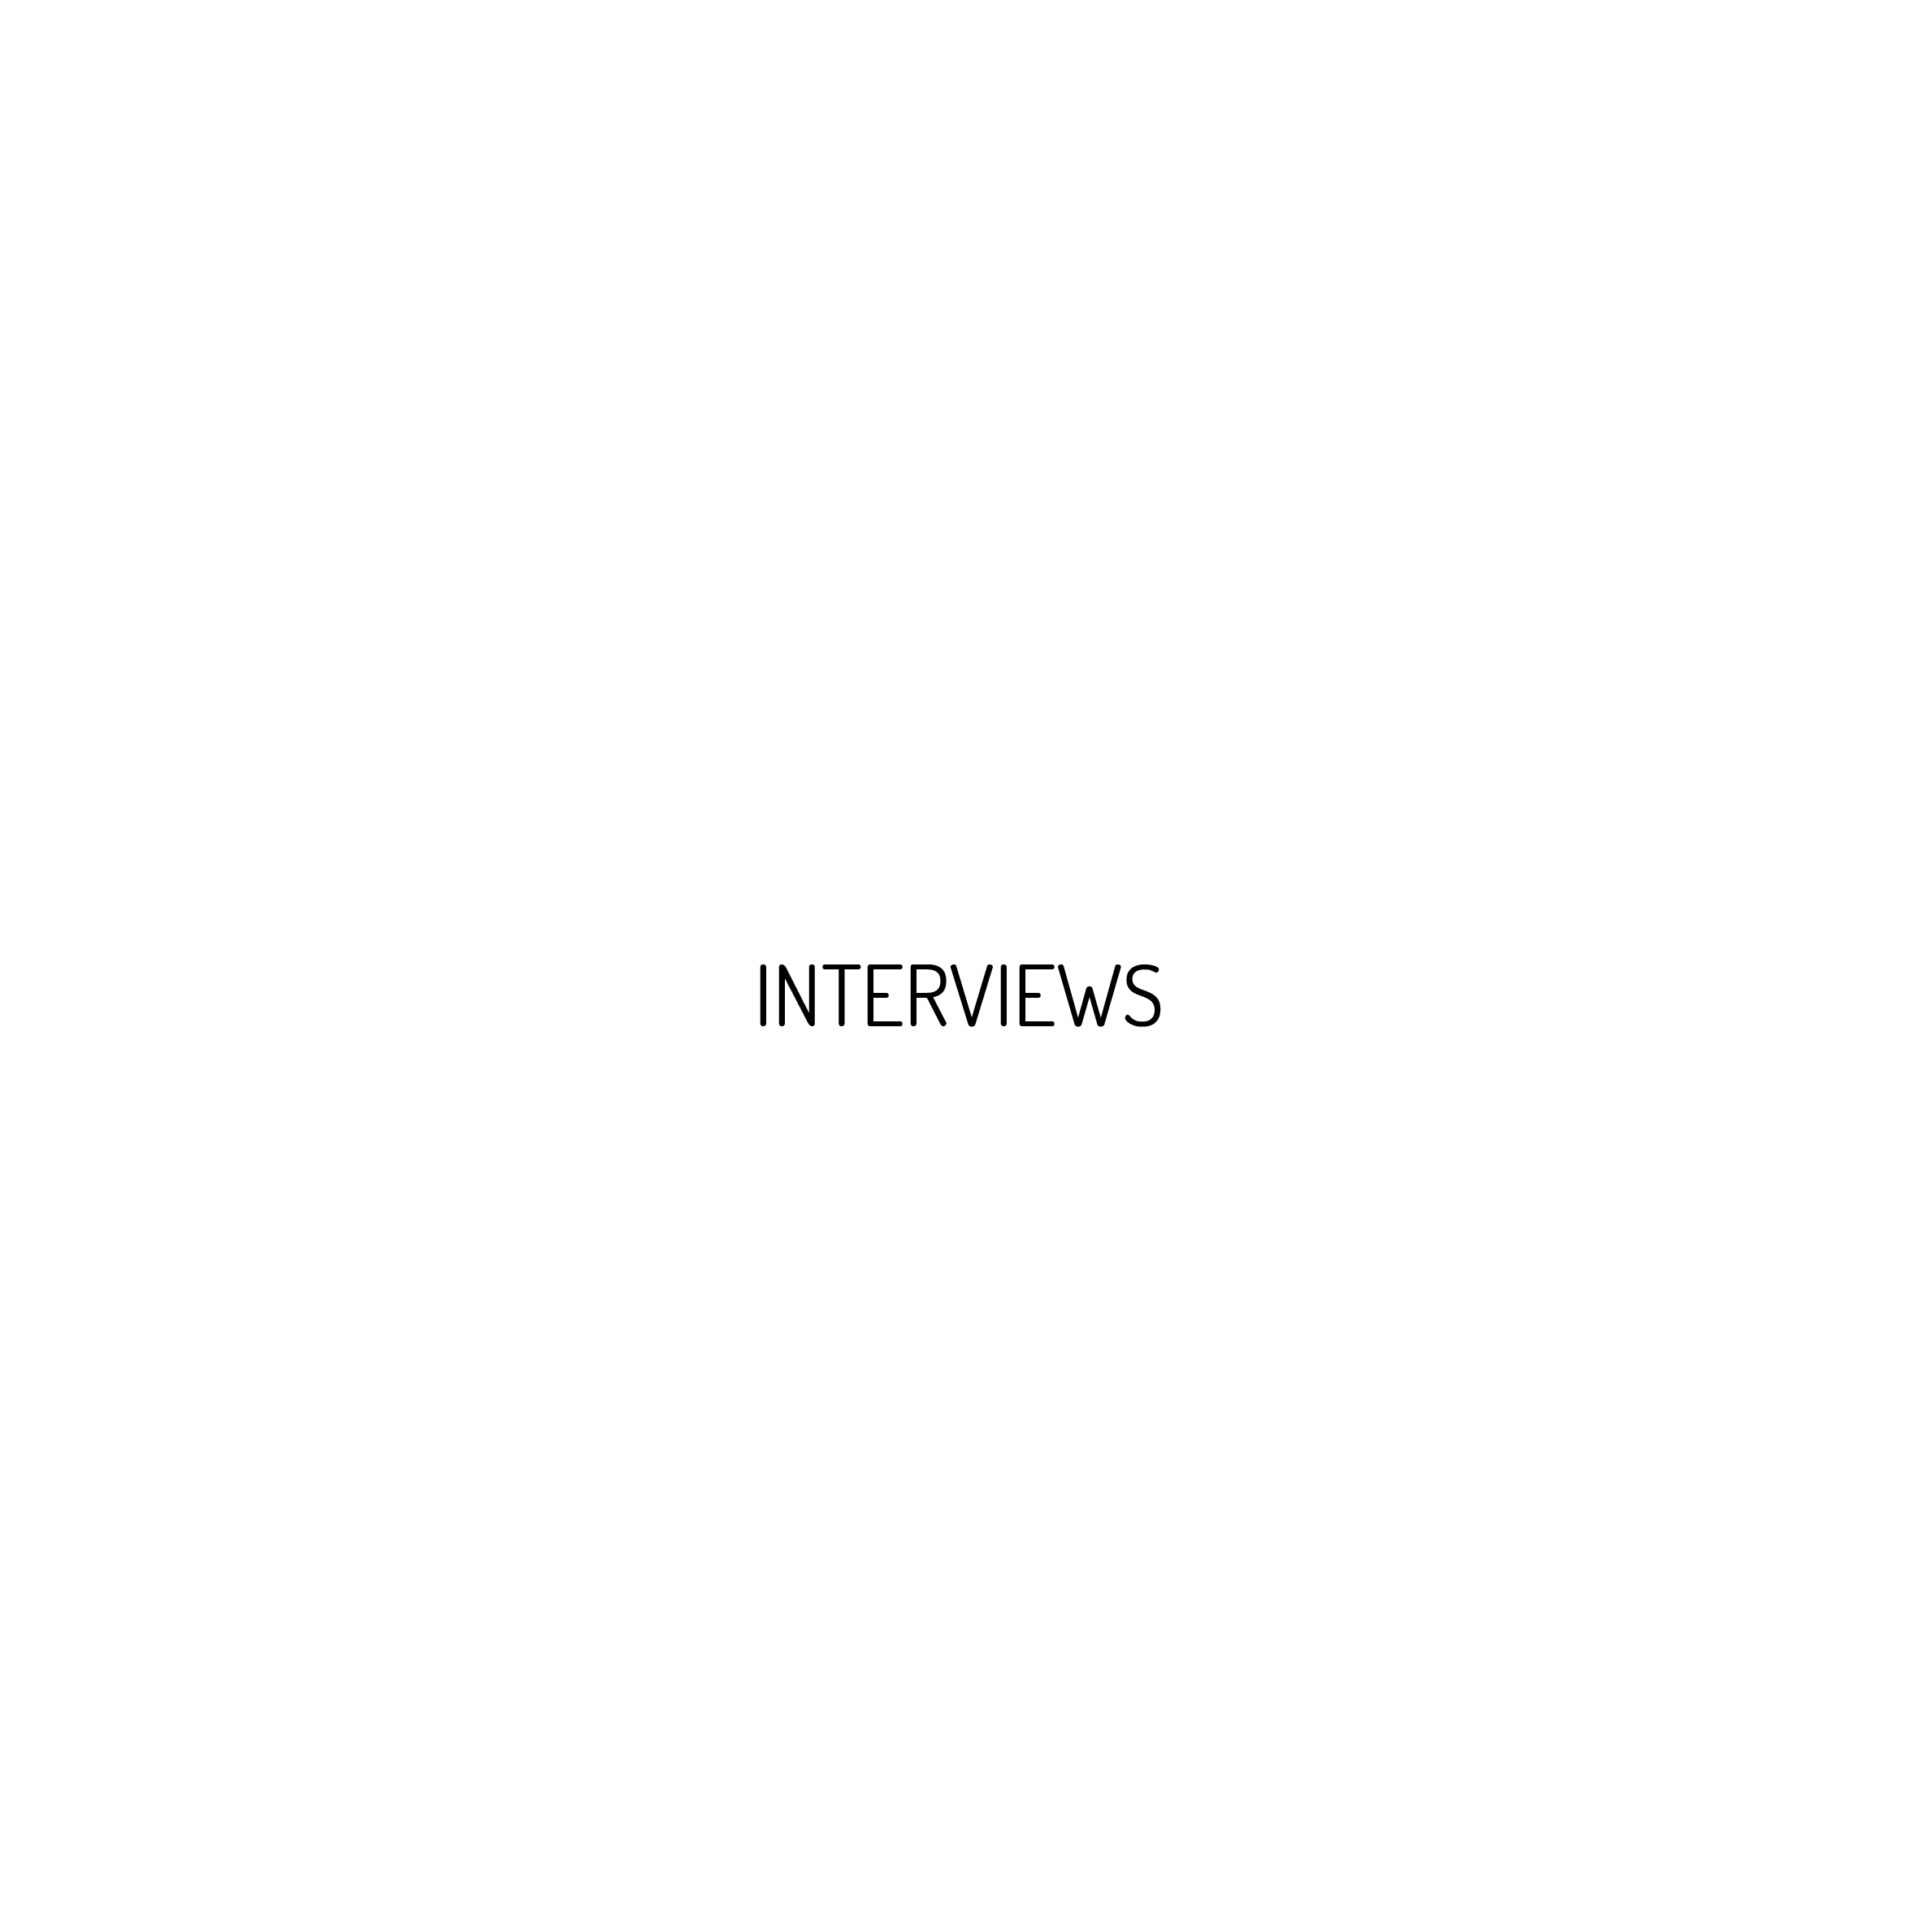 SEPARADORES_documentaries, lectures and interviews-01